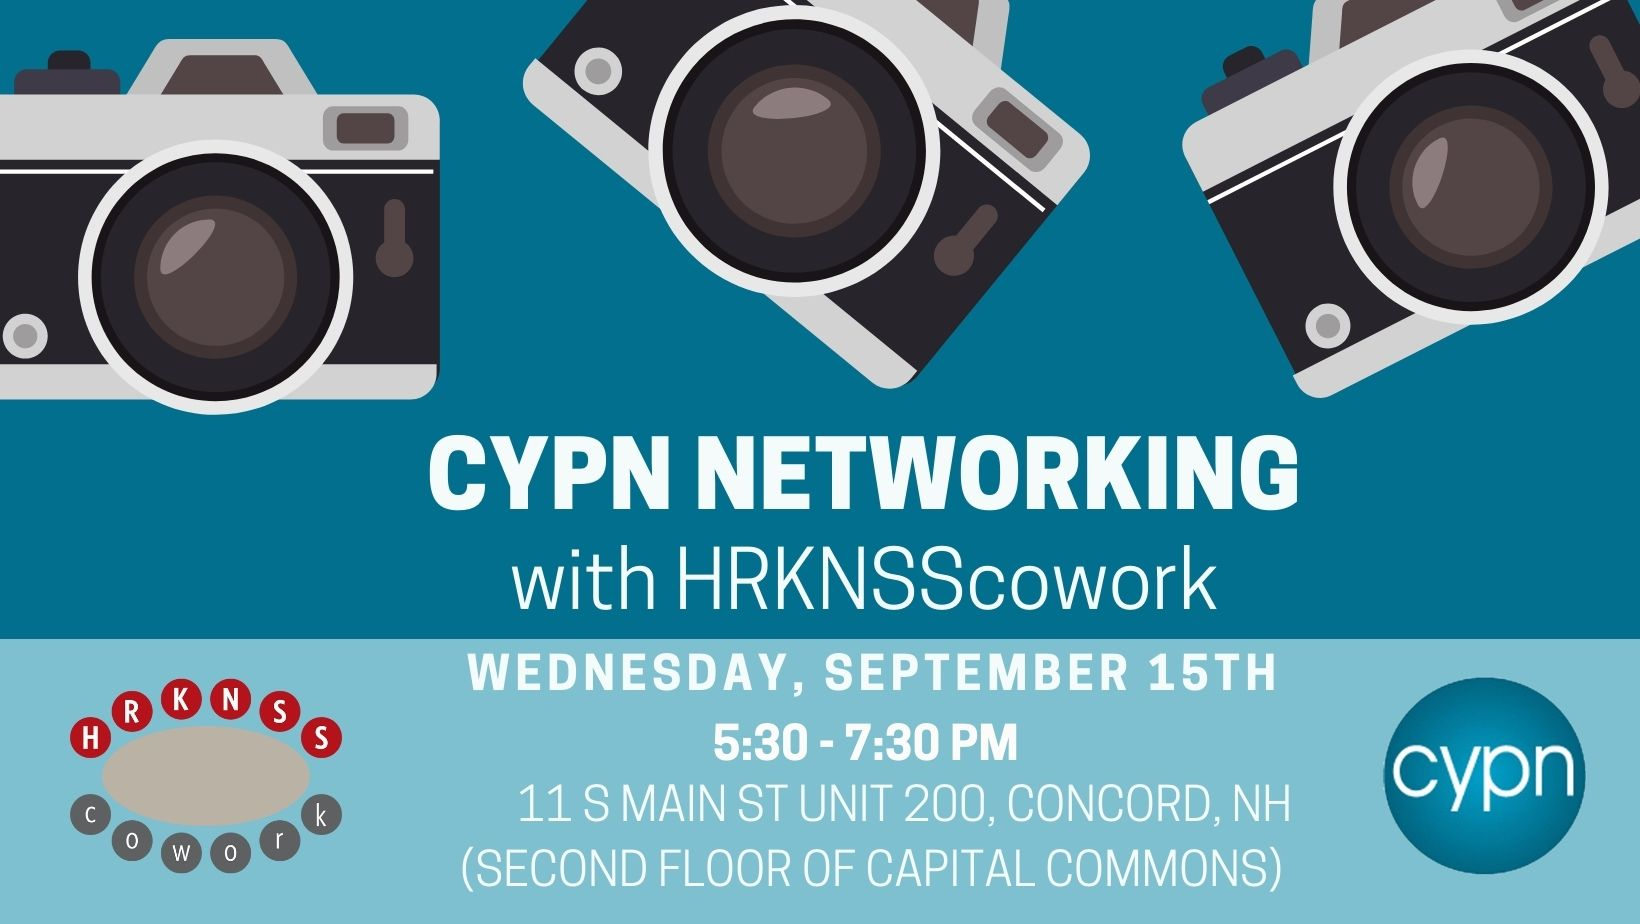 CYPN Networkinf: Grand Opening at HRKNSScowork